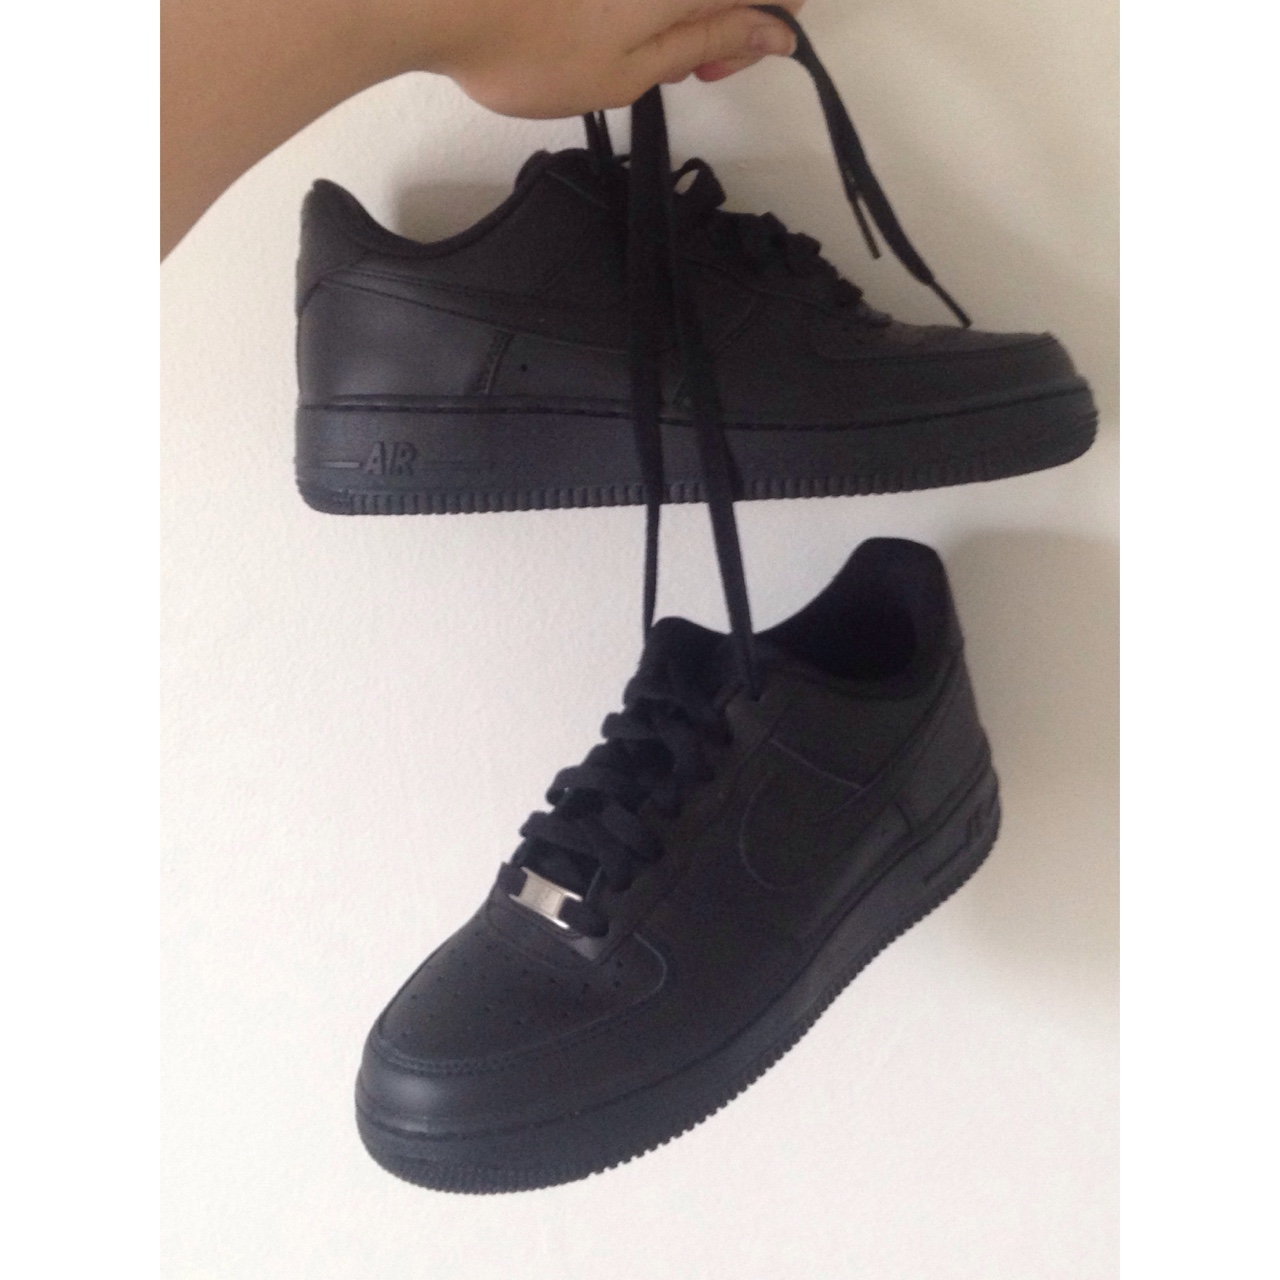 Black Nike Air Force-1 '82. Comes in